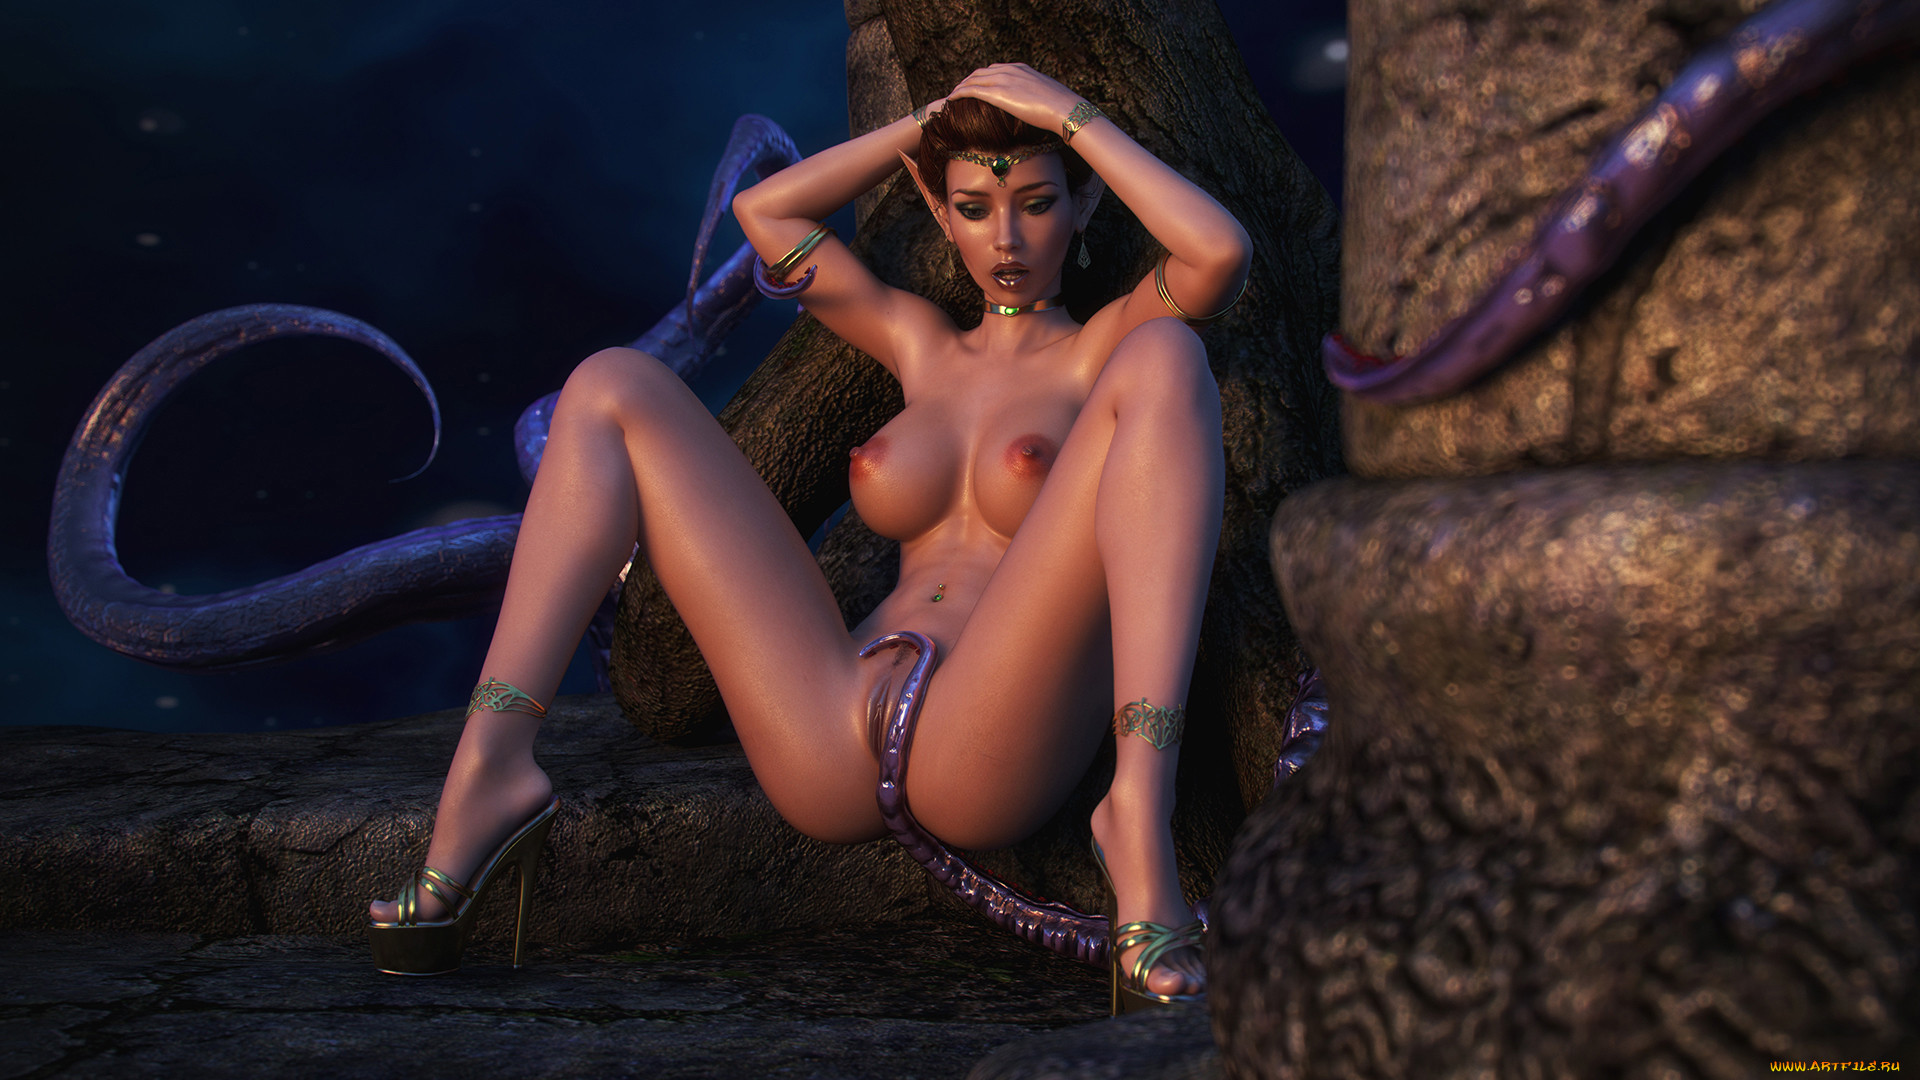 Wallpaper 3d romantic porn nsfw photos